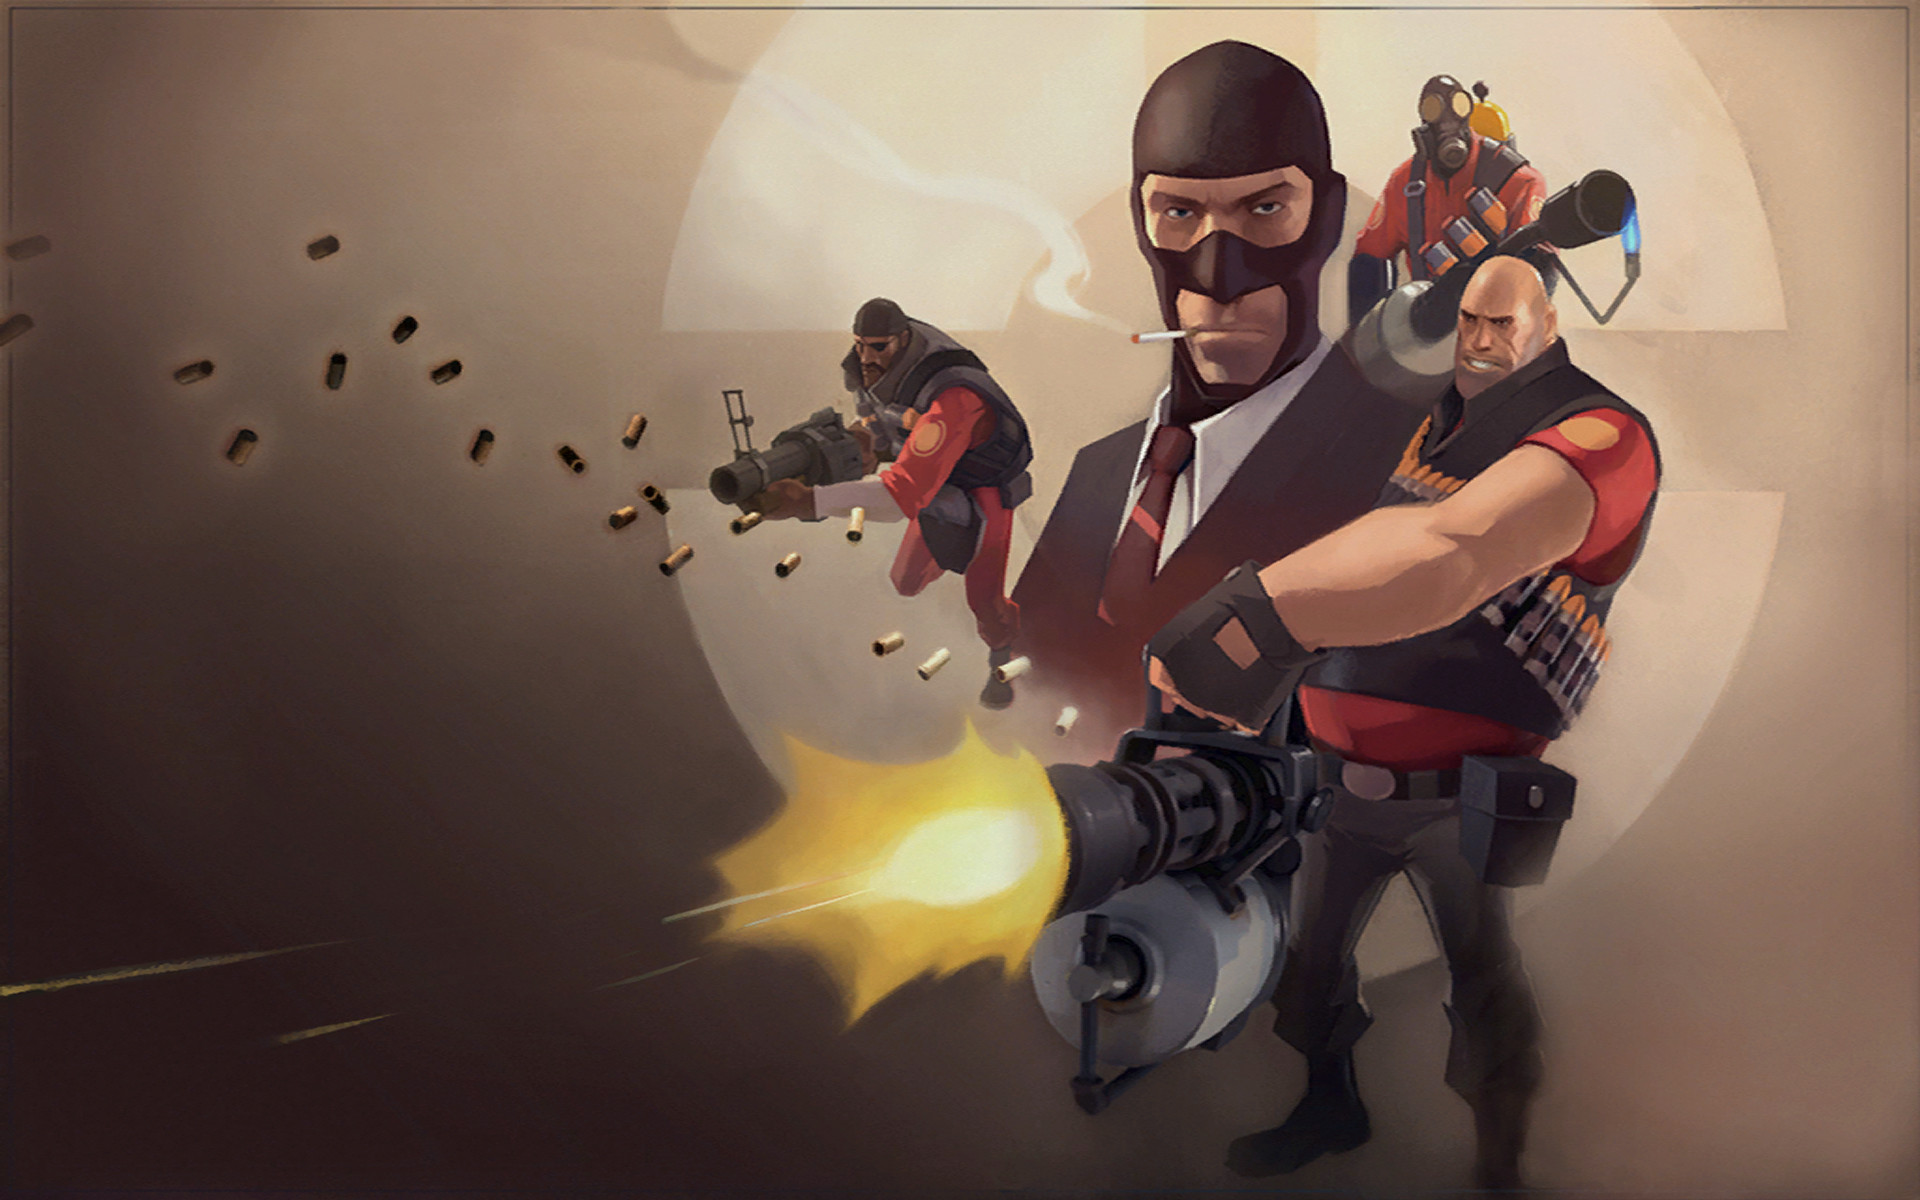 free team fortress 2 wallpapers desktop images colourful 4k free hi res  computer wallpapers colours artwork